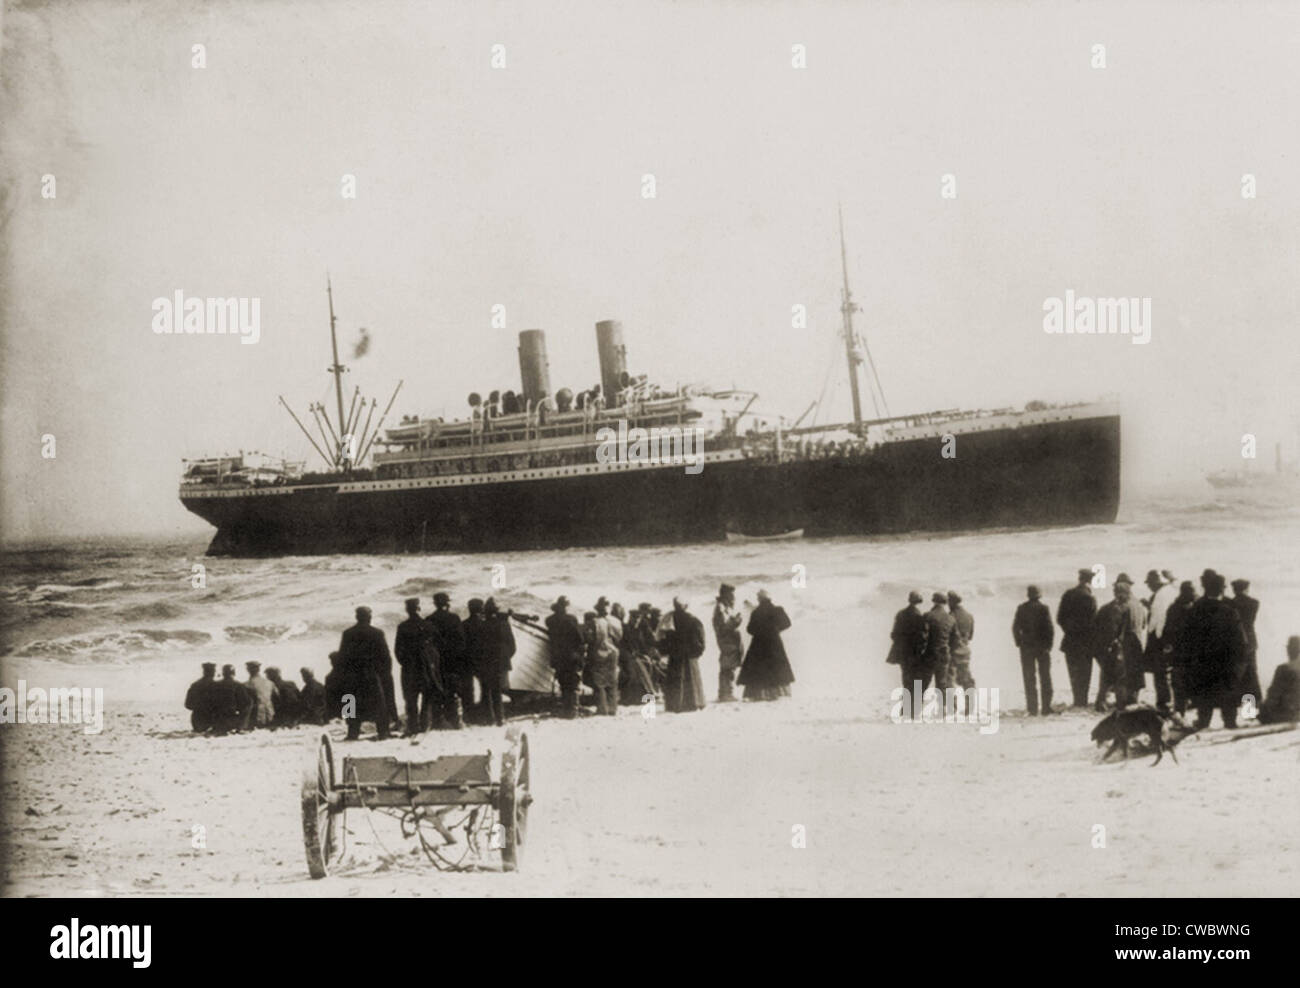 Immigrant ship from Italy, the PRINCESS IRENE, grounded in the Stock